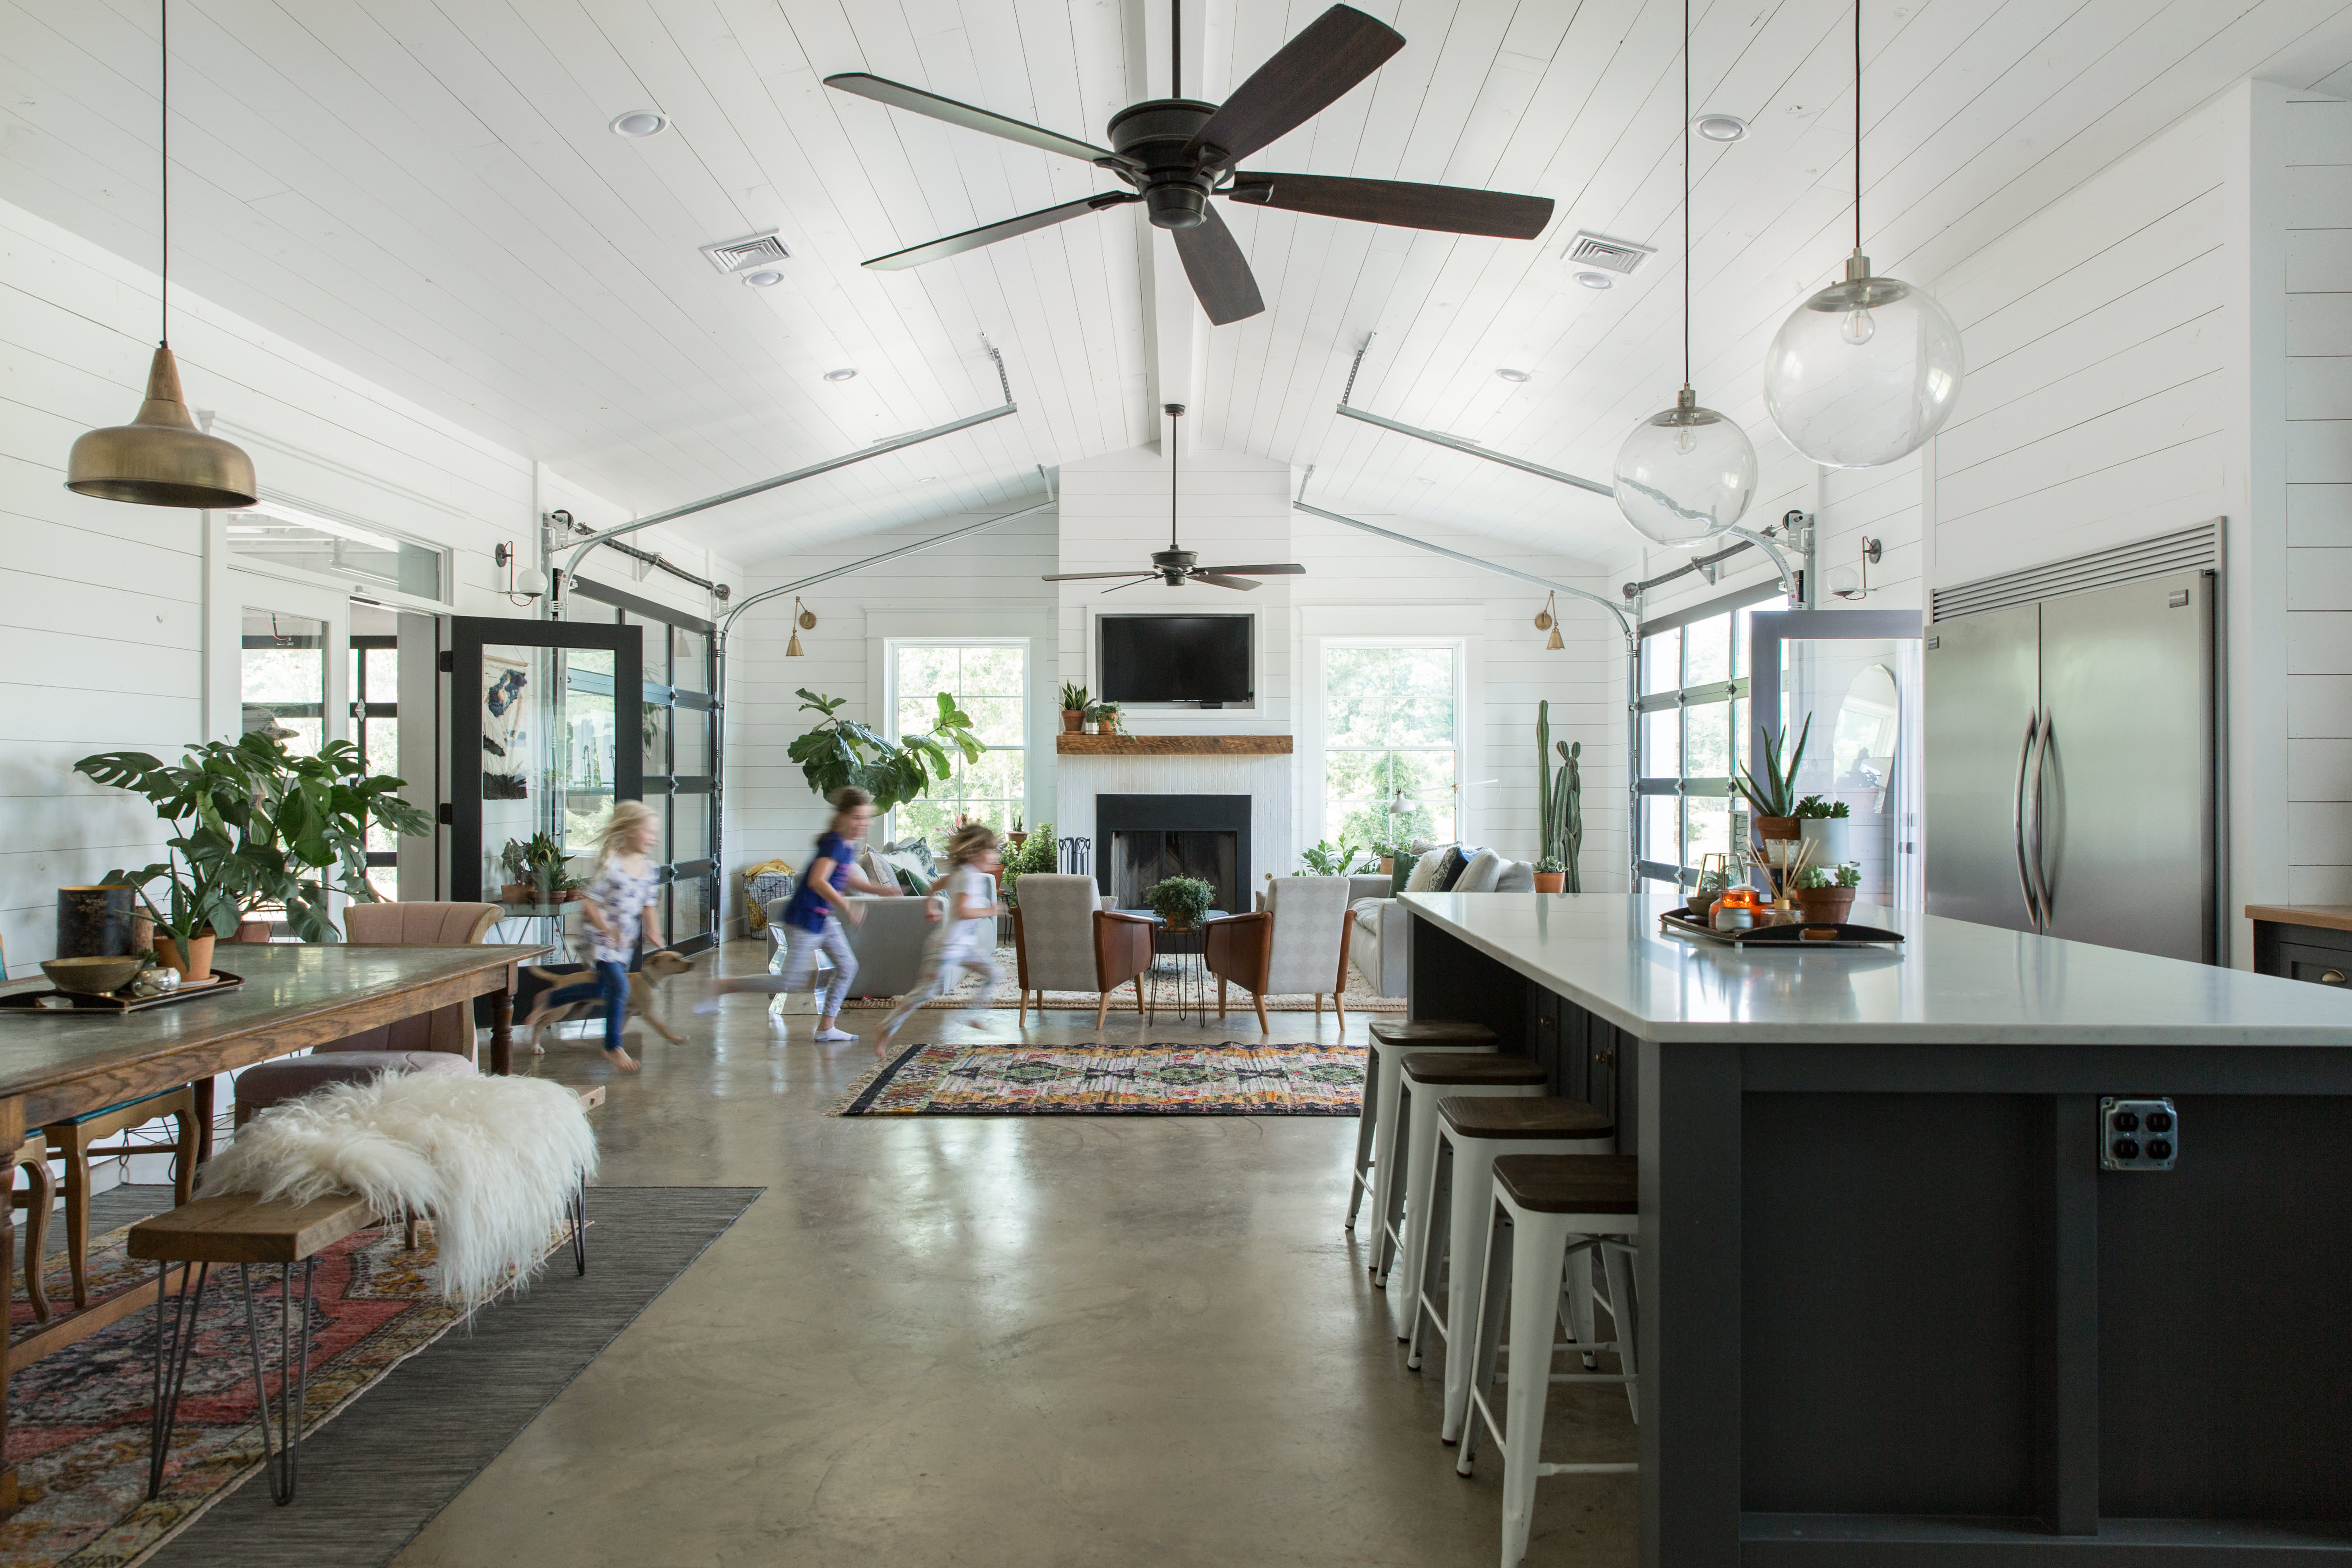 House Tour: An Eclectic Barn House in Louisiana | Apartment